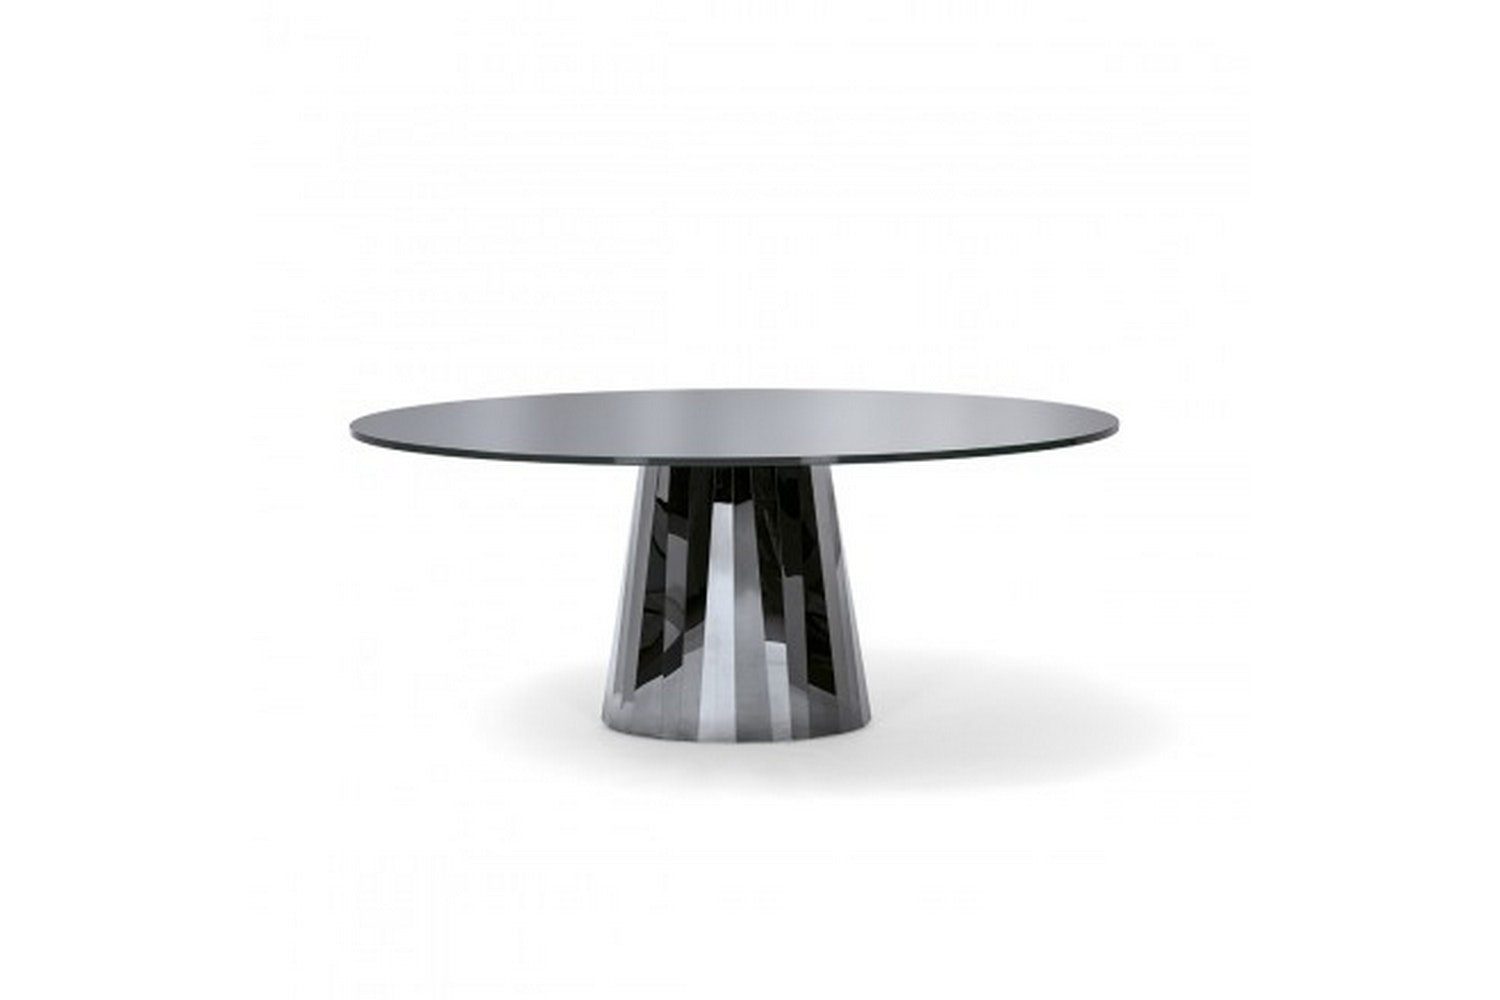 Pli Table by Victoria Wilmotte for ClassiCon